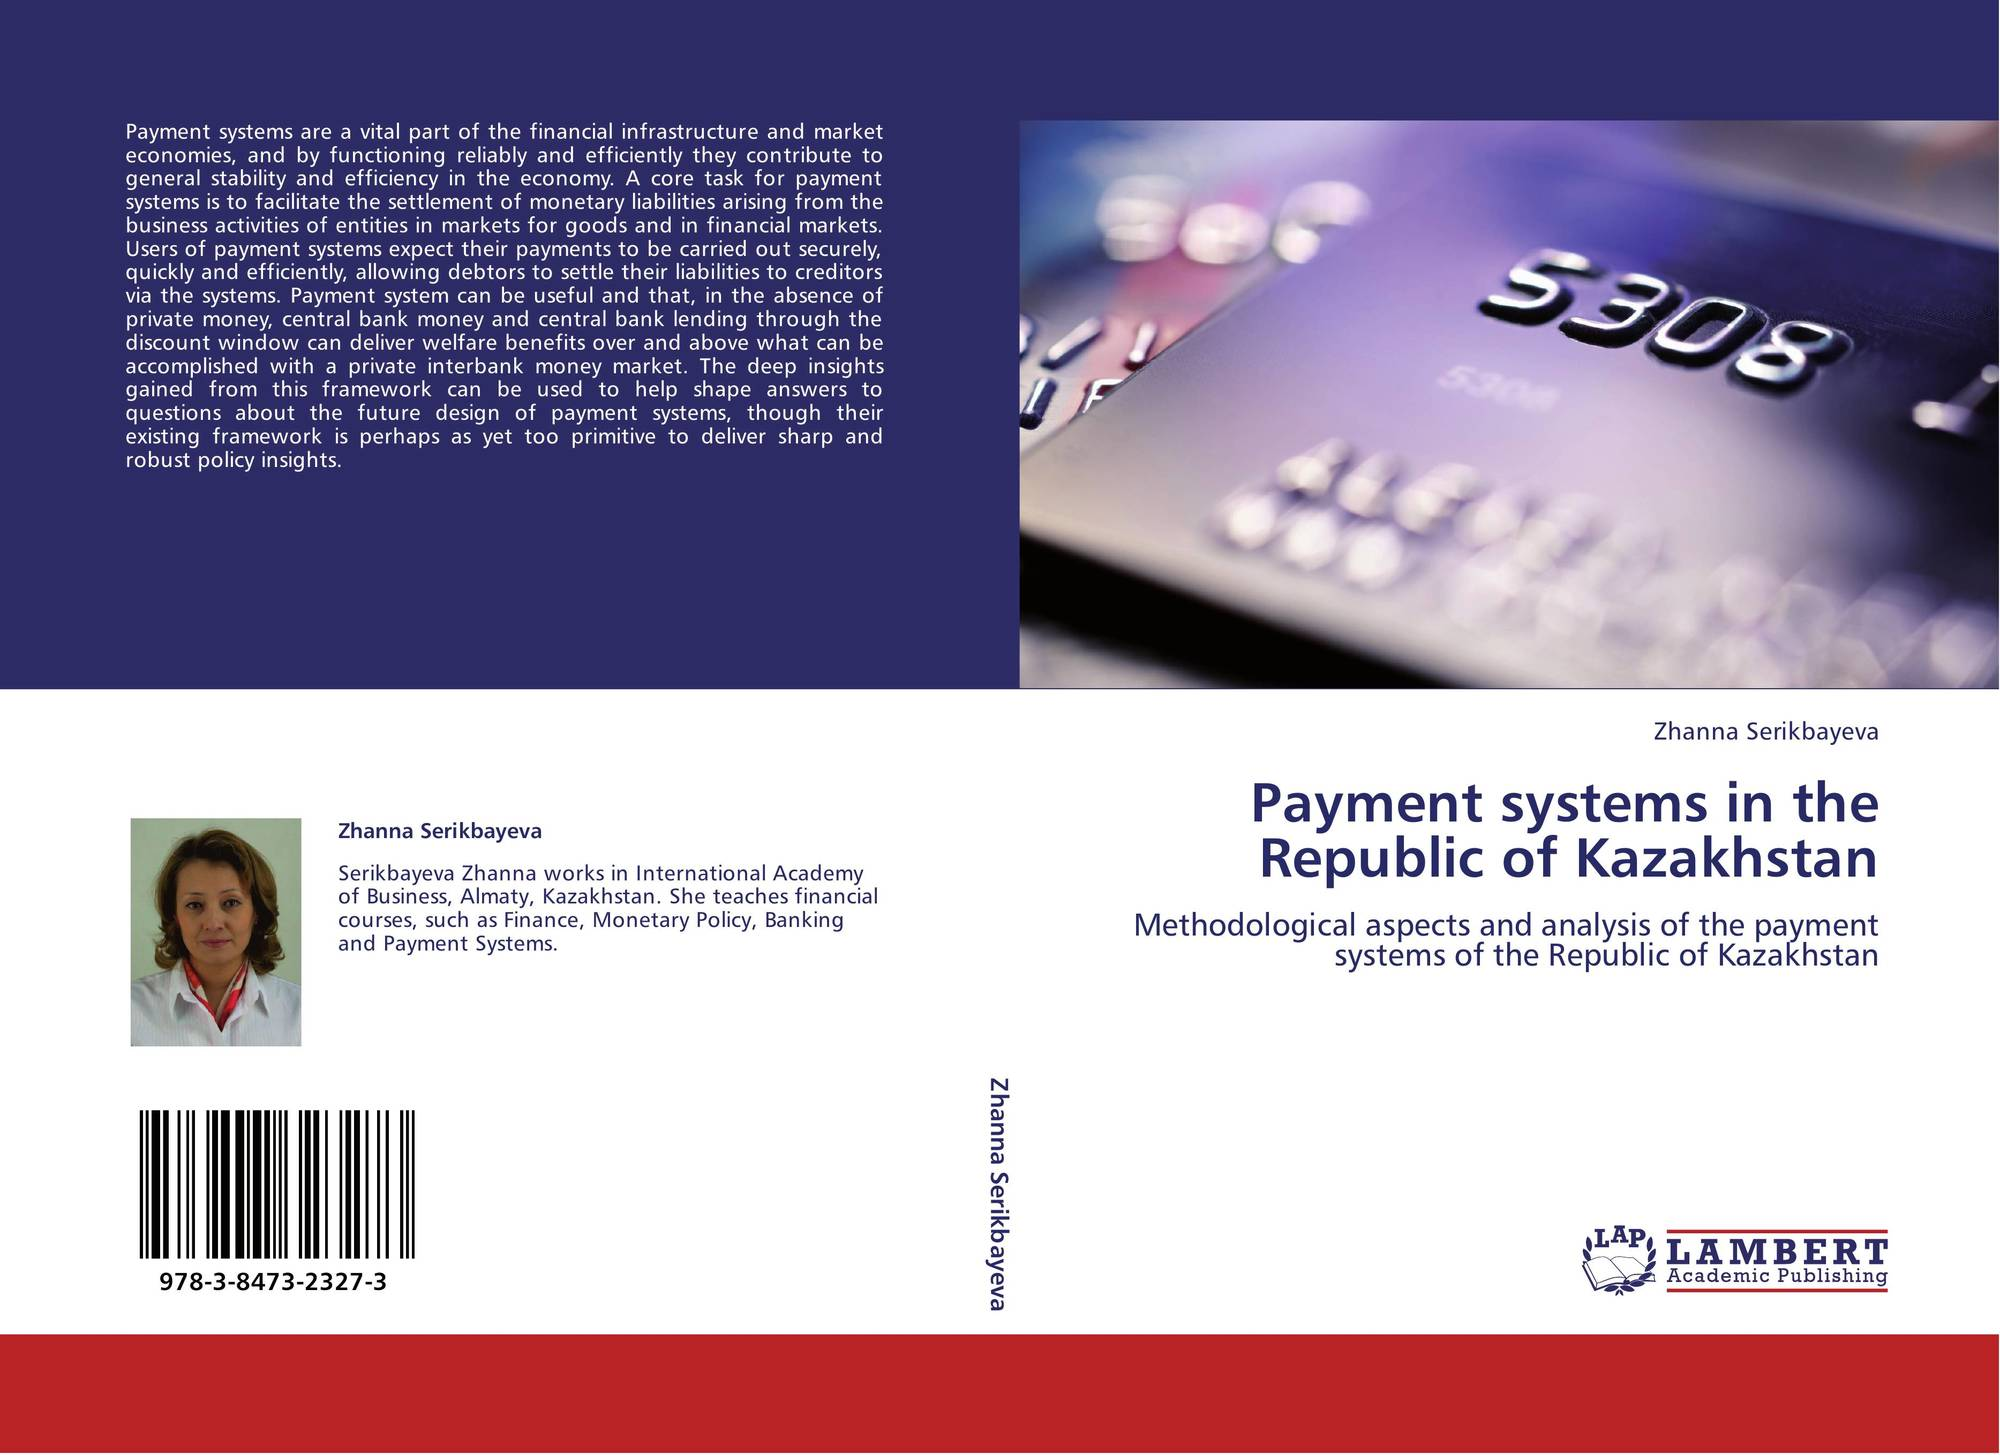 analysis of international pay systems System (or payment system) that pass transaction between banks to complete the payment cycle, whether initiated by paper cheque or by electronic these payment systems have numbers of requirements such as security, acceptability, convenience, cost, anonymity, control, and traceability.